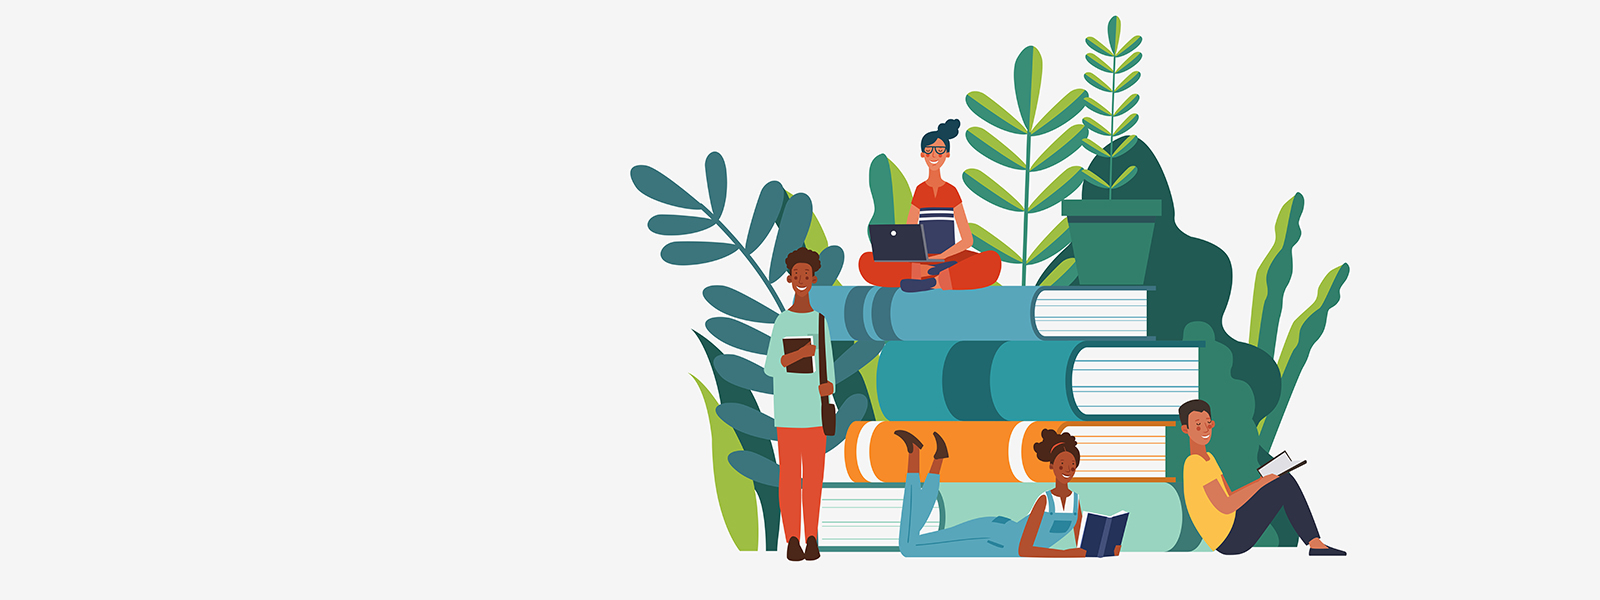 An illustration of students standing around a stack of books.